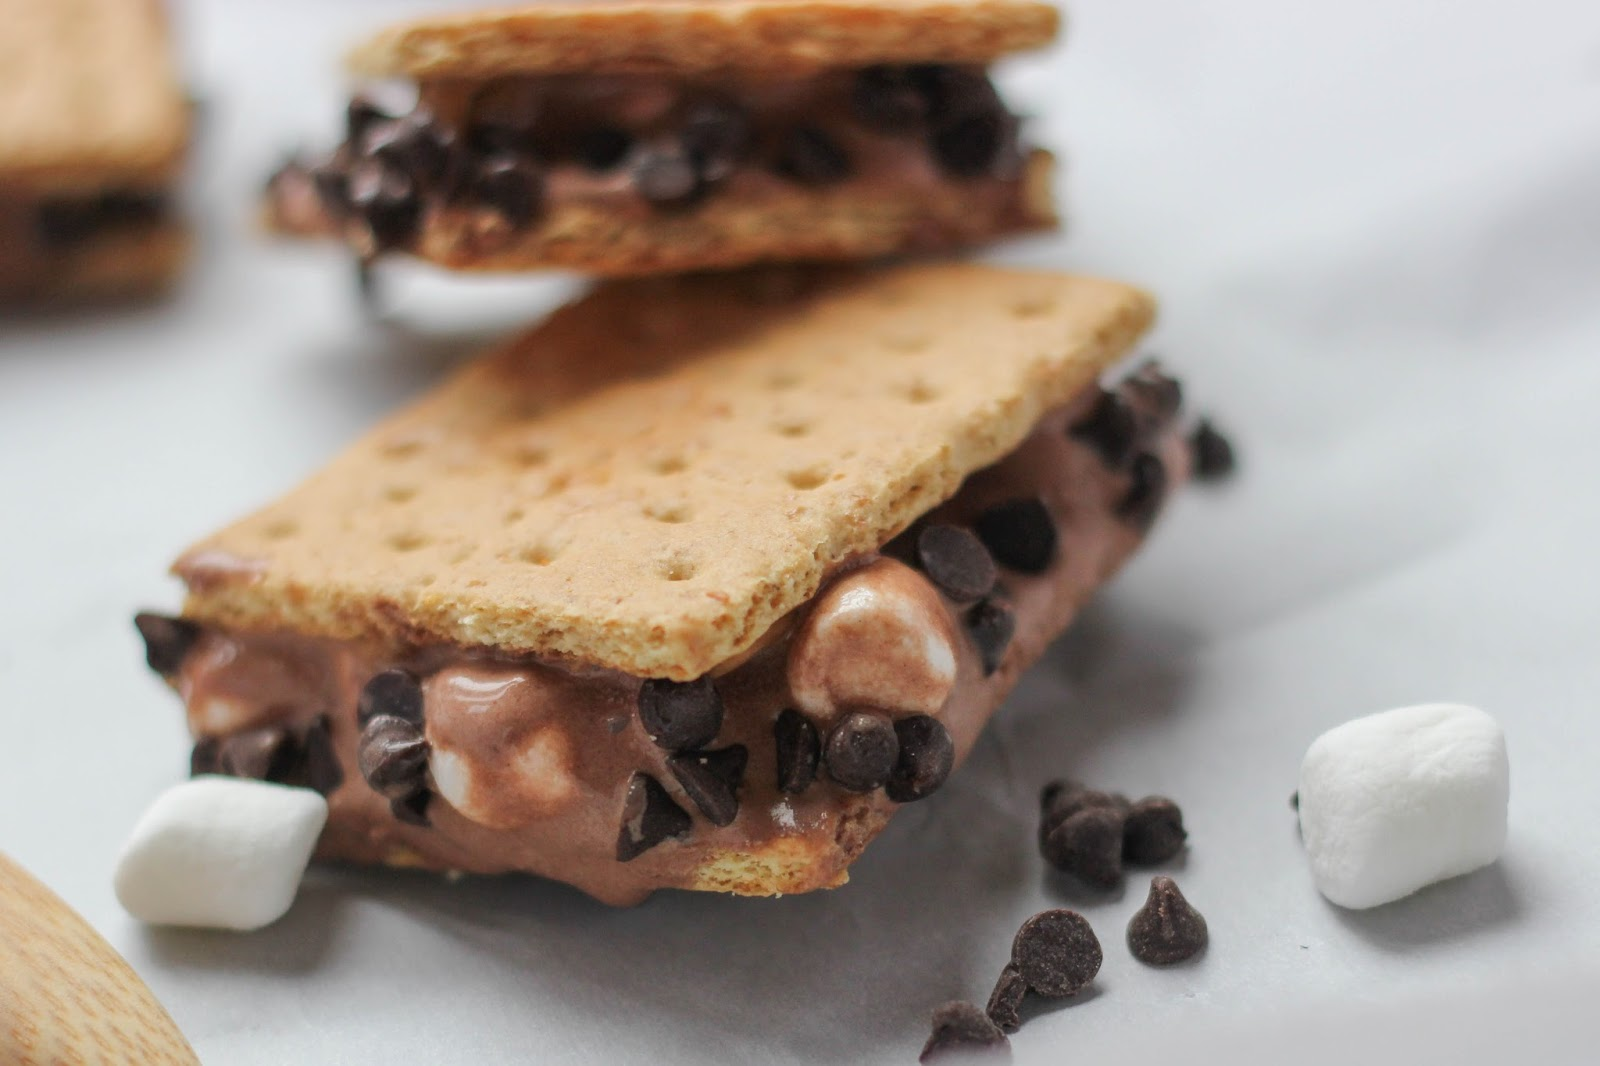 Ice cream sandwiches are so easy (and fun!) to make at home! Love this recipe from Little City Adventures for Chocolate Peanut Butter Marshmallow Ice Cream Sandwiches #icecream #dessert #littlecitykitchen